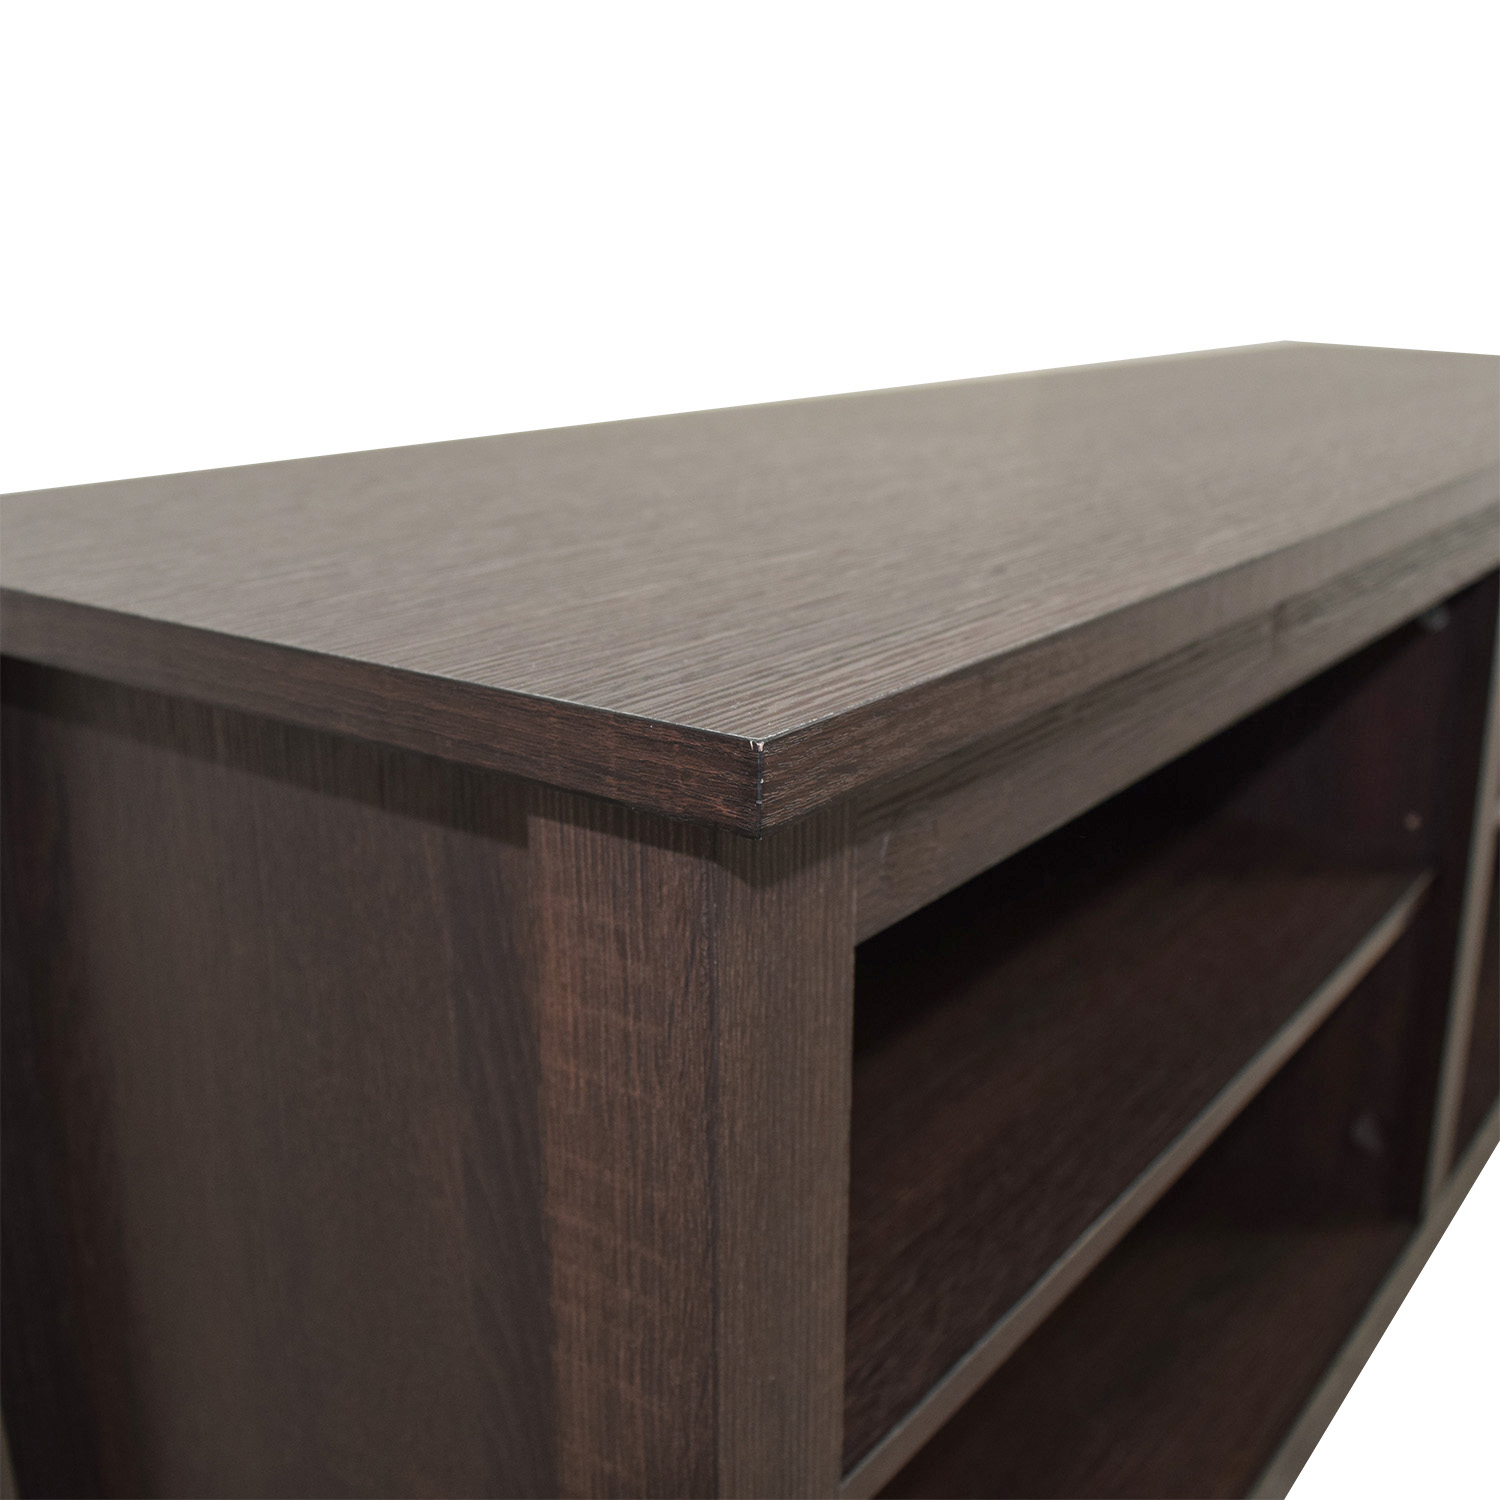 WE Furniture WE Furniture Wood TV Stand Storage Console used